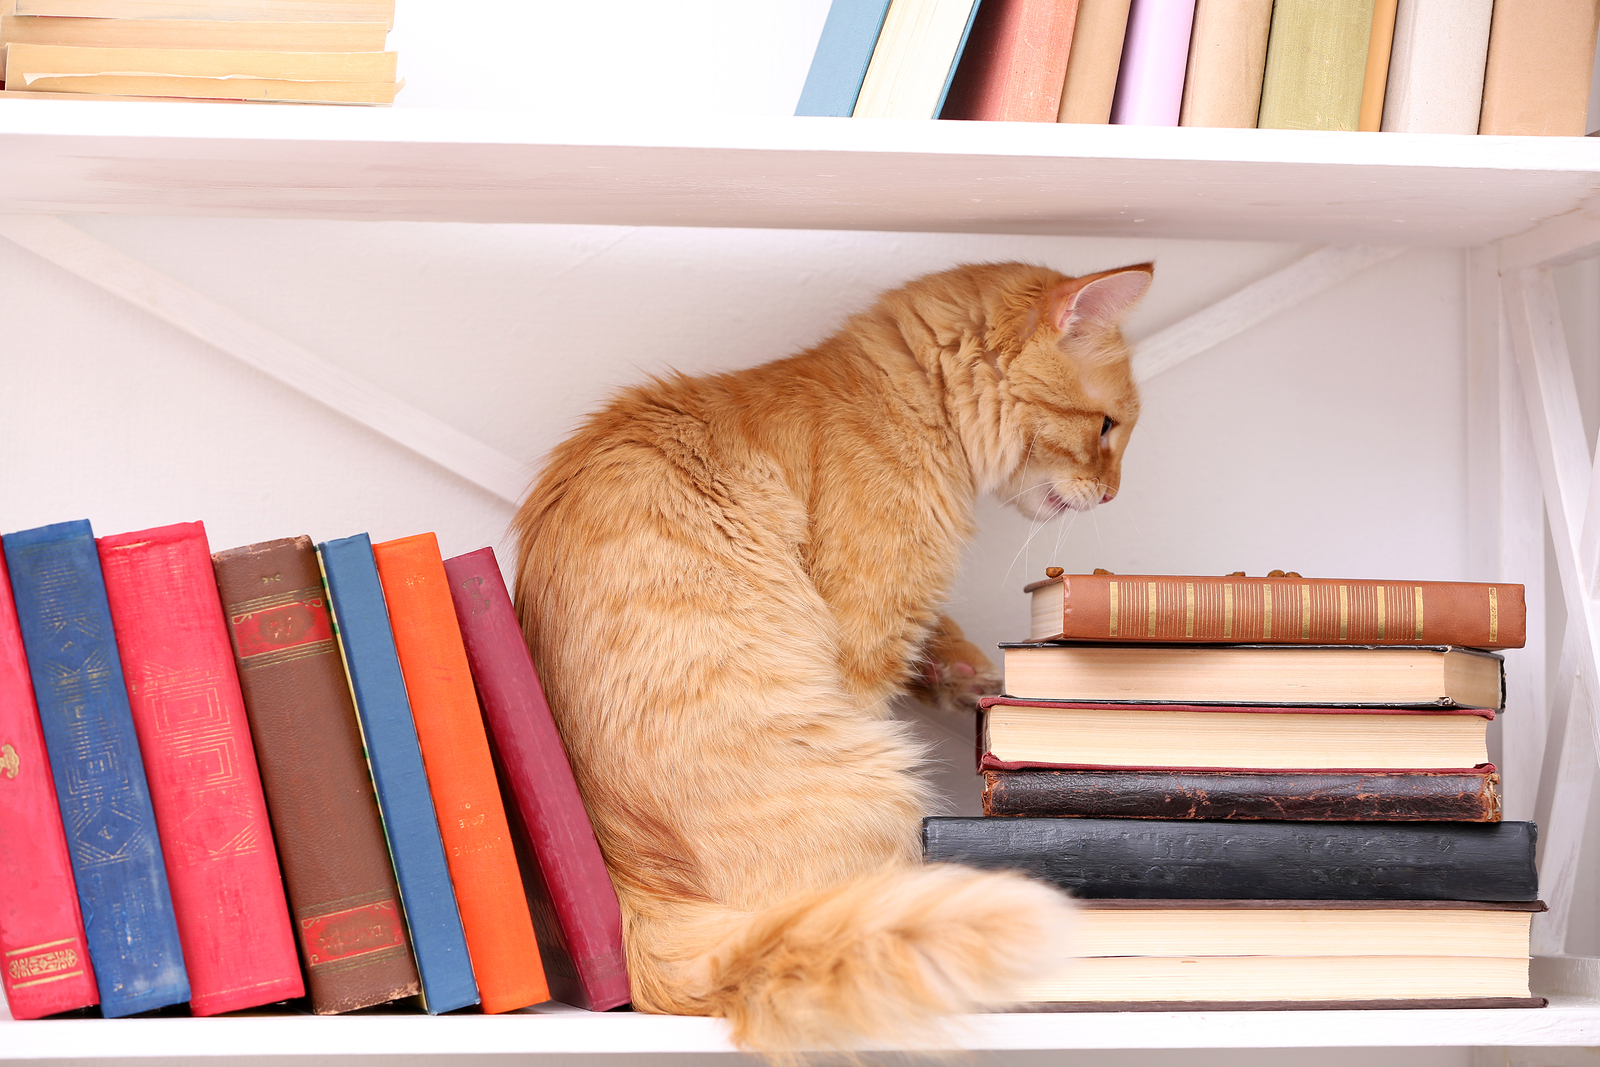 Cute little cat on shelf with books on light background